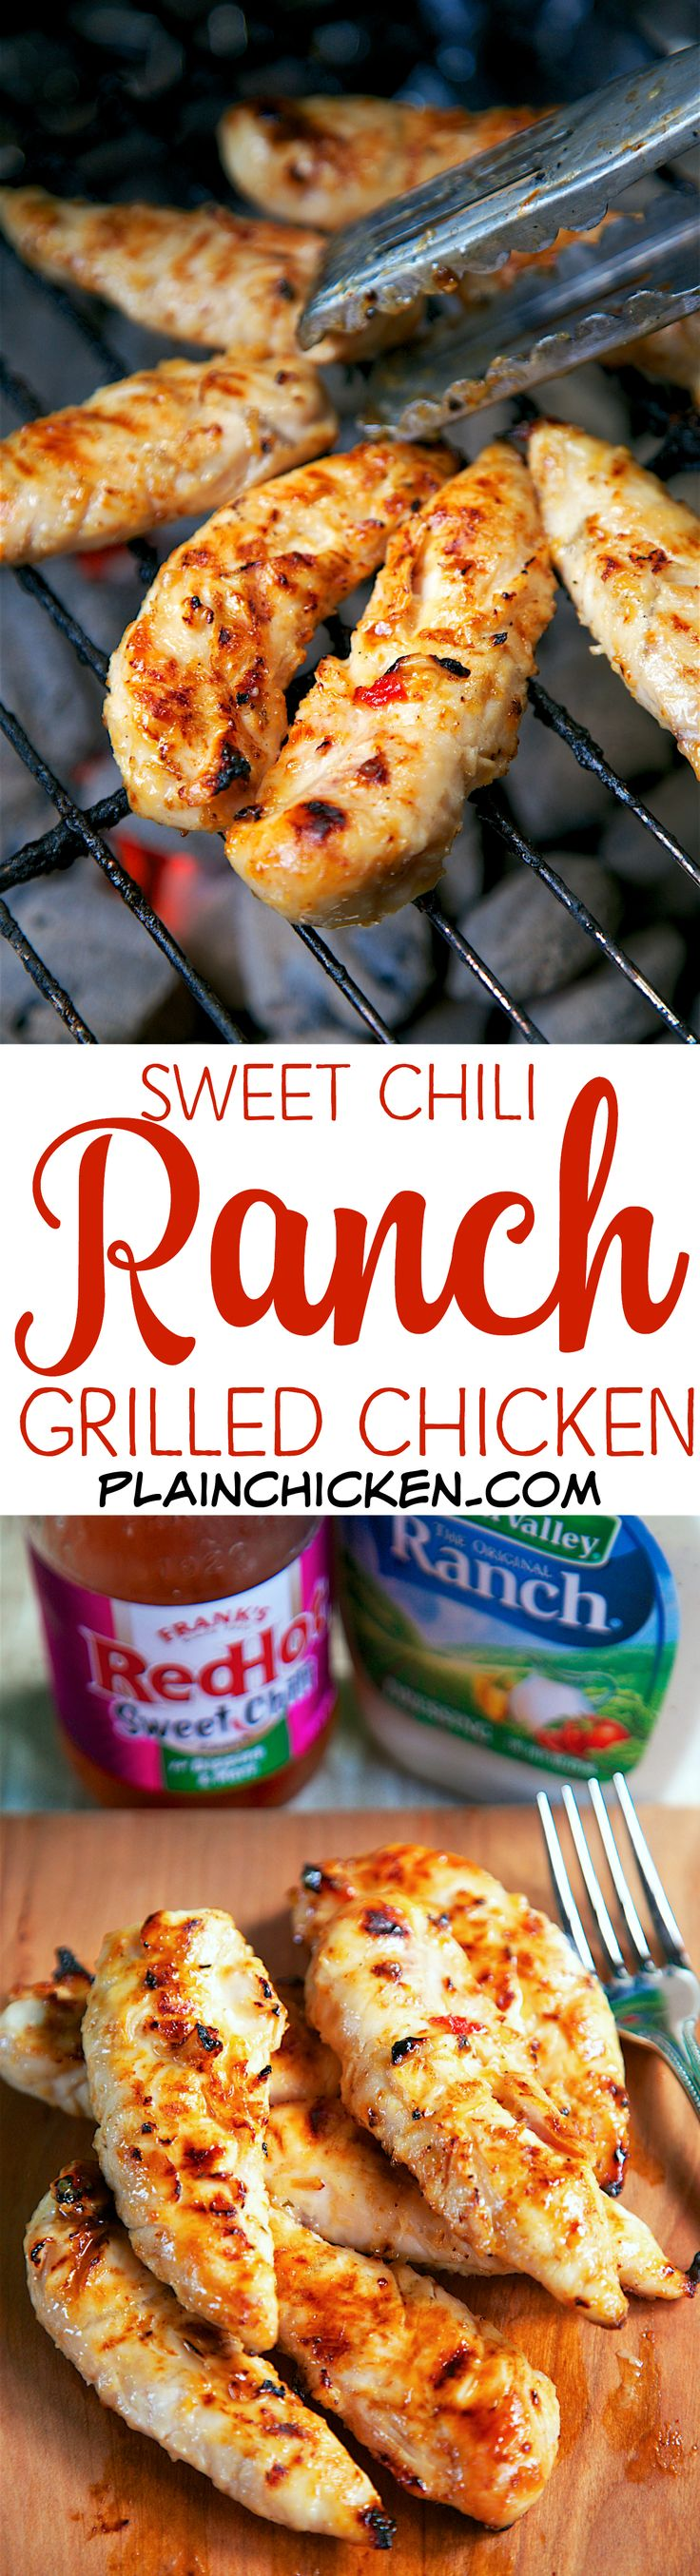 Sweet Chili Ranch Grilled Chicken - only 2 ingredients in the marinade! Let the chicken marinate a few hours to overnight for maximum flavor. OMG! This chicken was CRAZY good! We made it two nights in a row. Great as a main dish or on top of a salad. Perfect for tailgating too!!